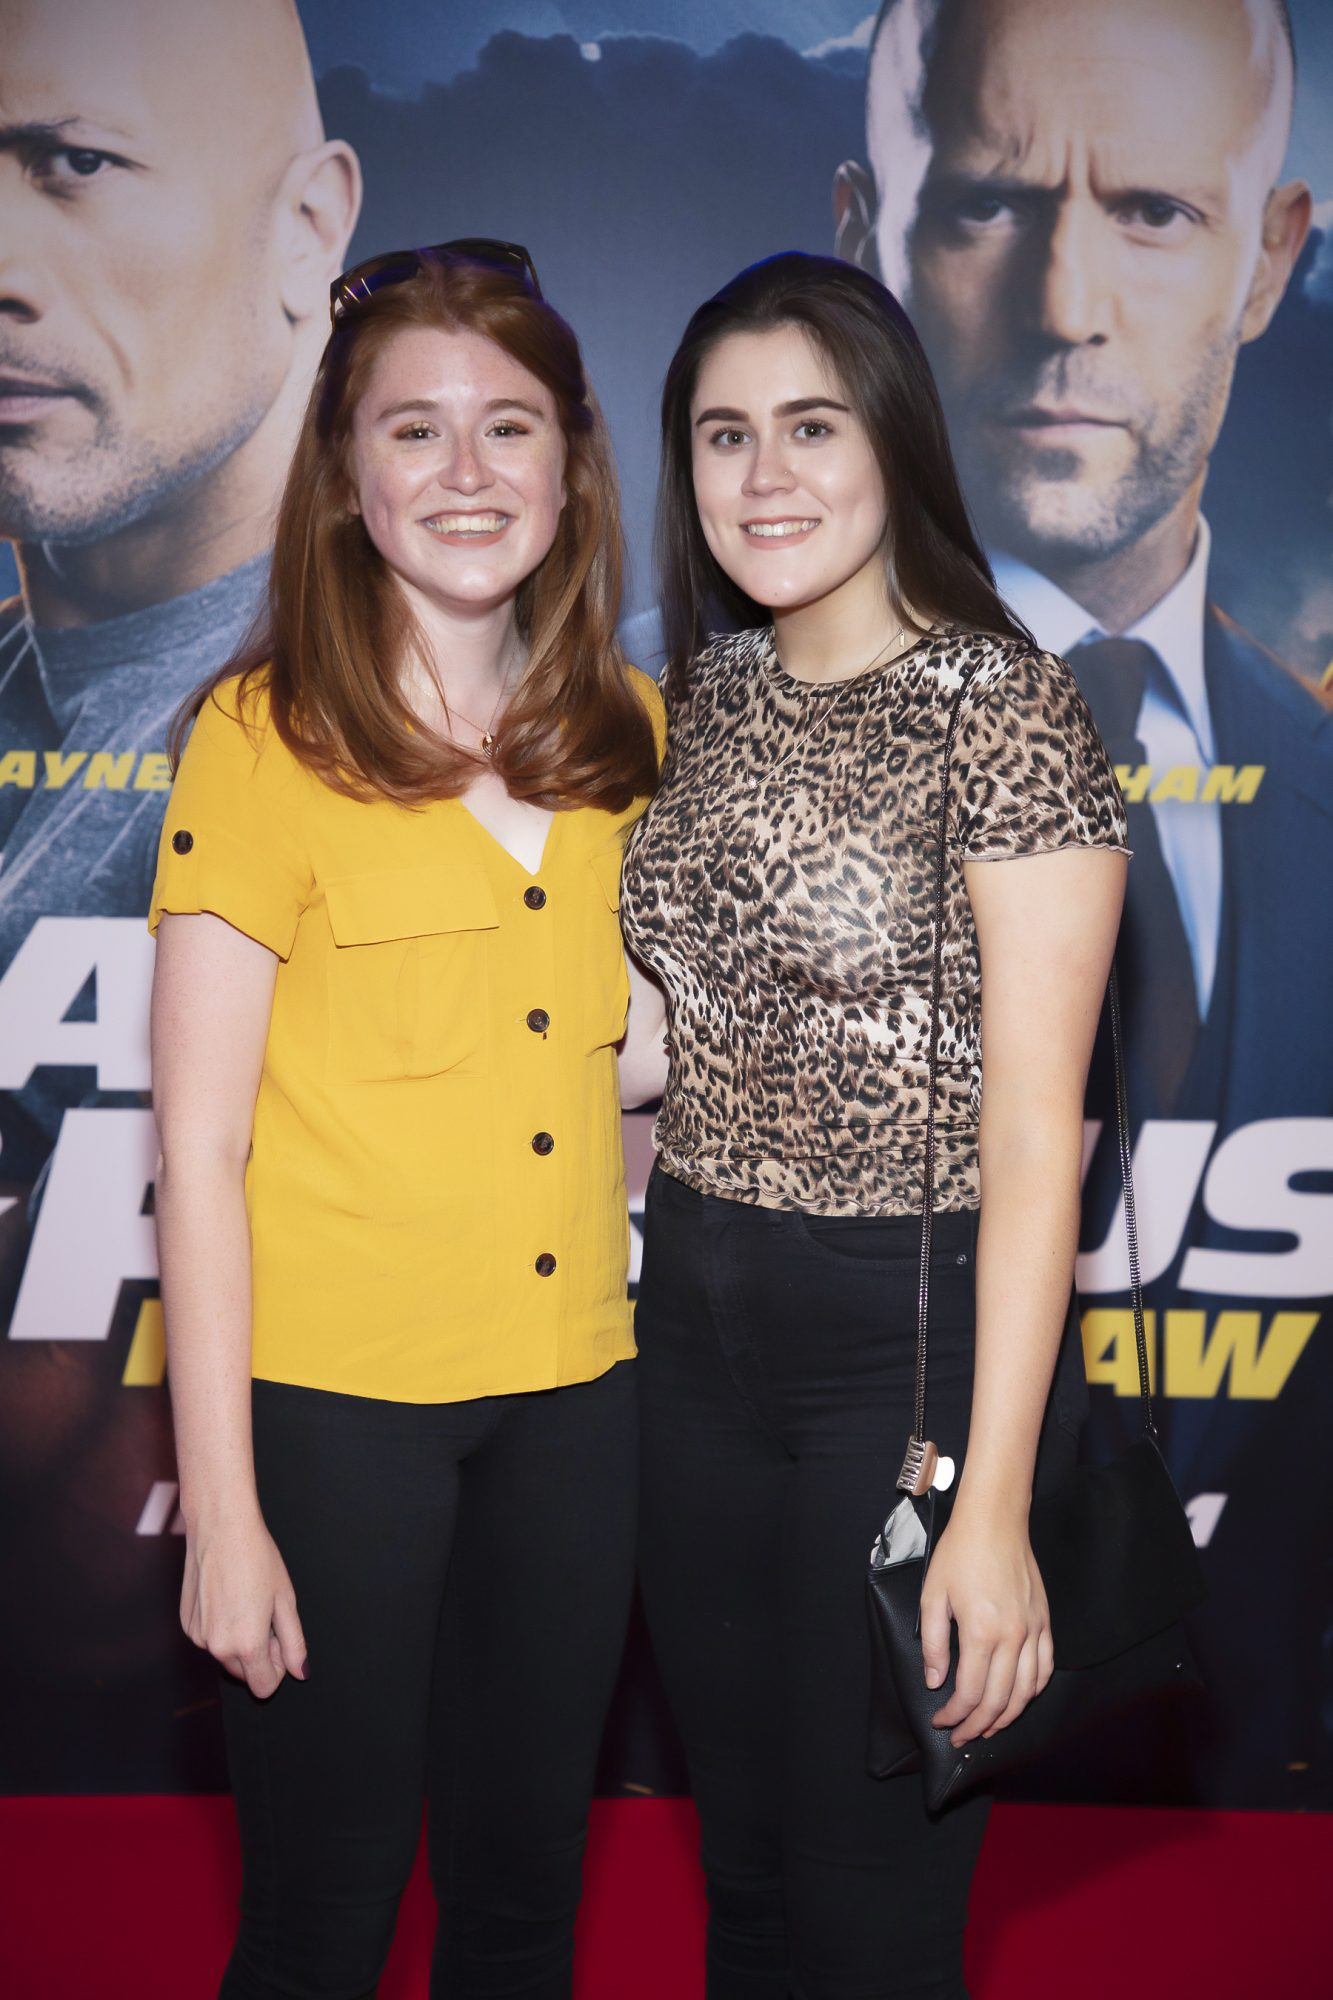 Bláithín Willis & Orlagh Willis pictured at a special preview screening of Fast & Furious Presents: Hobbs & Shaw. Photo: Anthony Woods